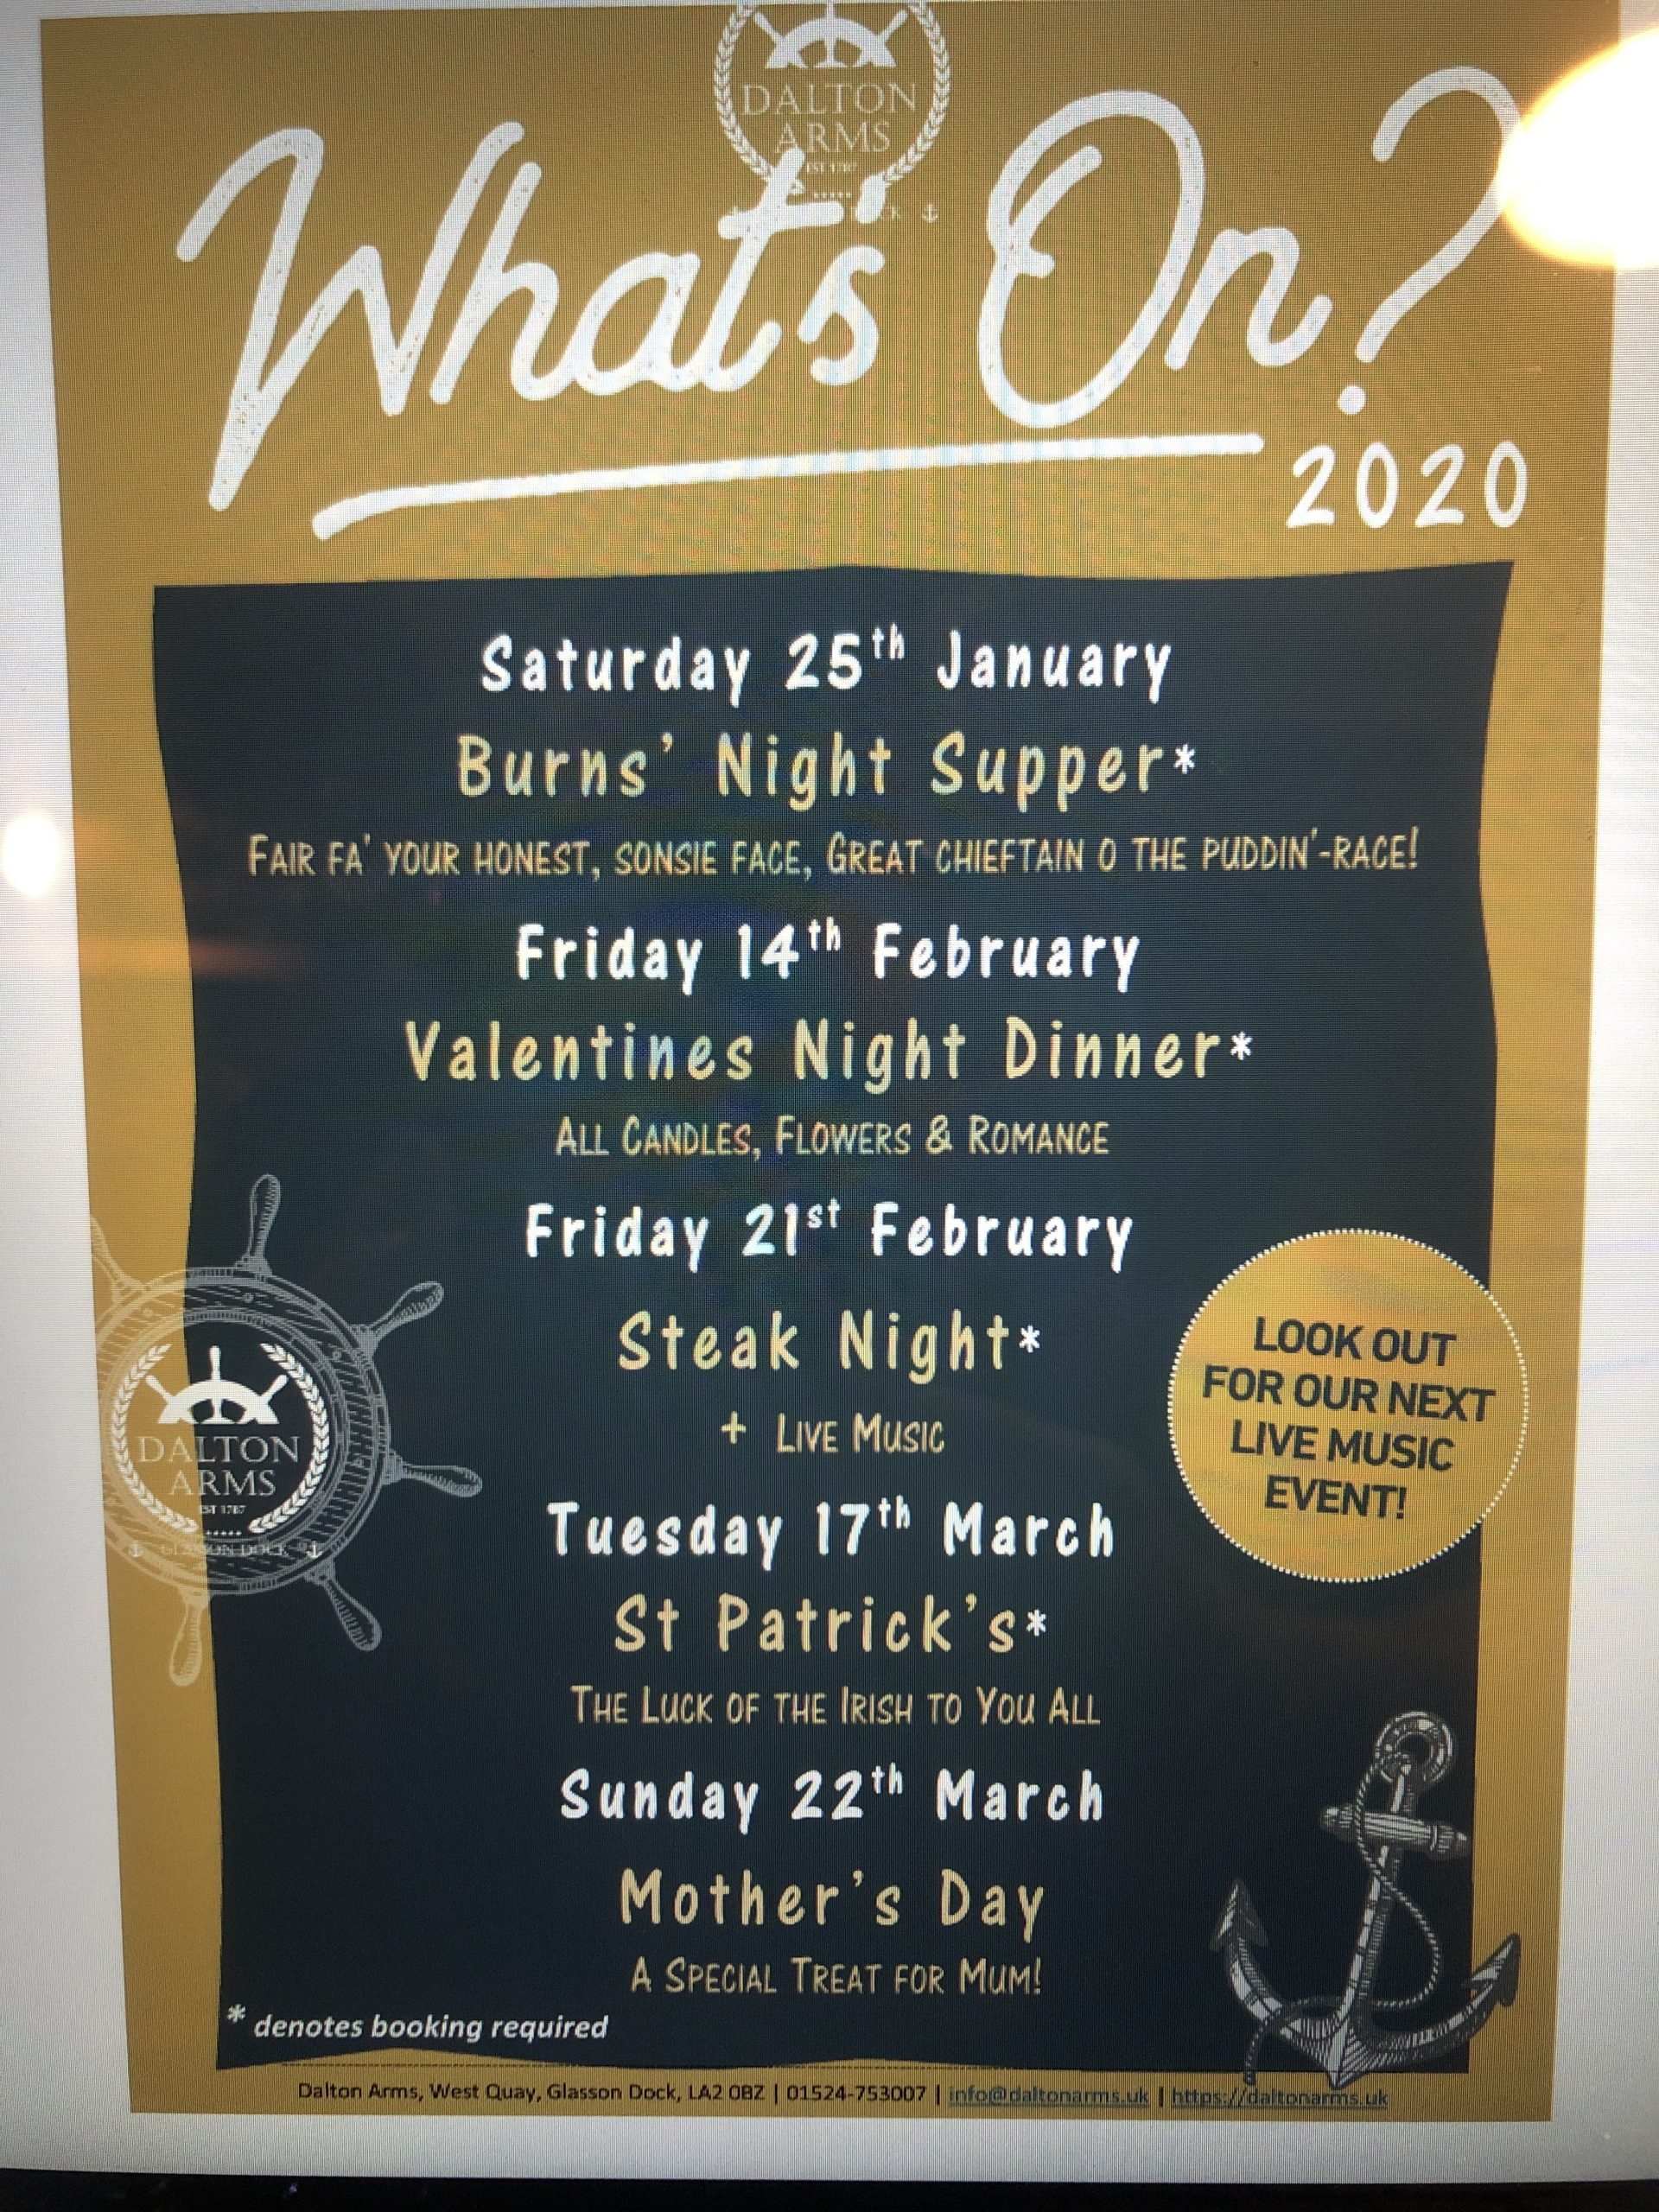 Steak Night Friday 21st February 2020